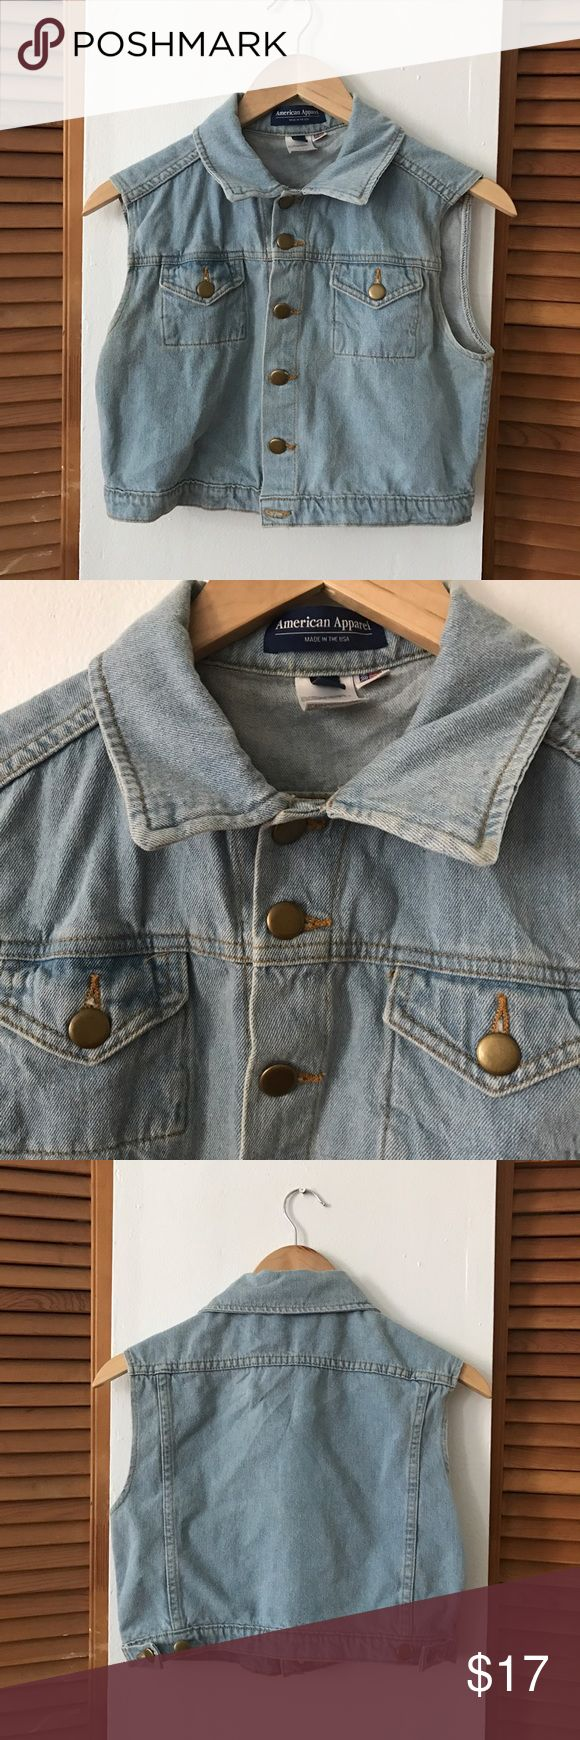 American Apparel cropped denim vest Super cute cropped denim vest. Very lightweight and versatile! The crop makes it look good with everything American Apparel Jackets & Coats Vests